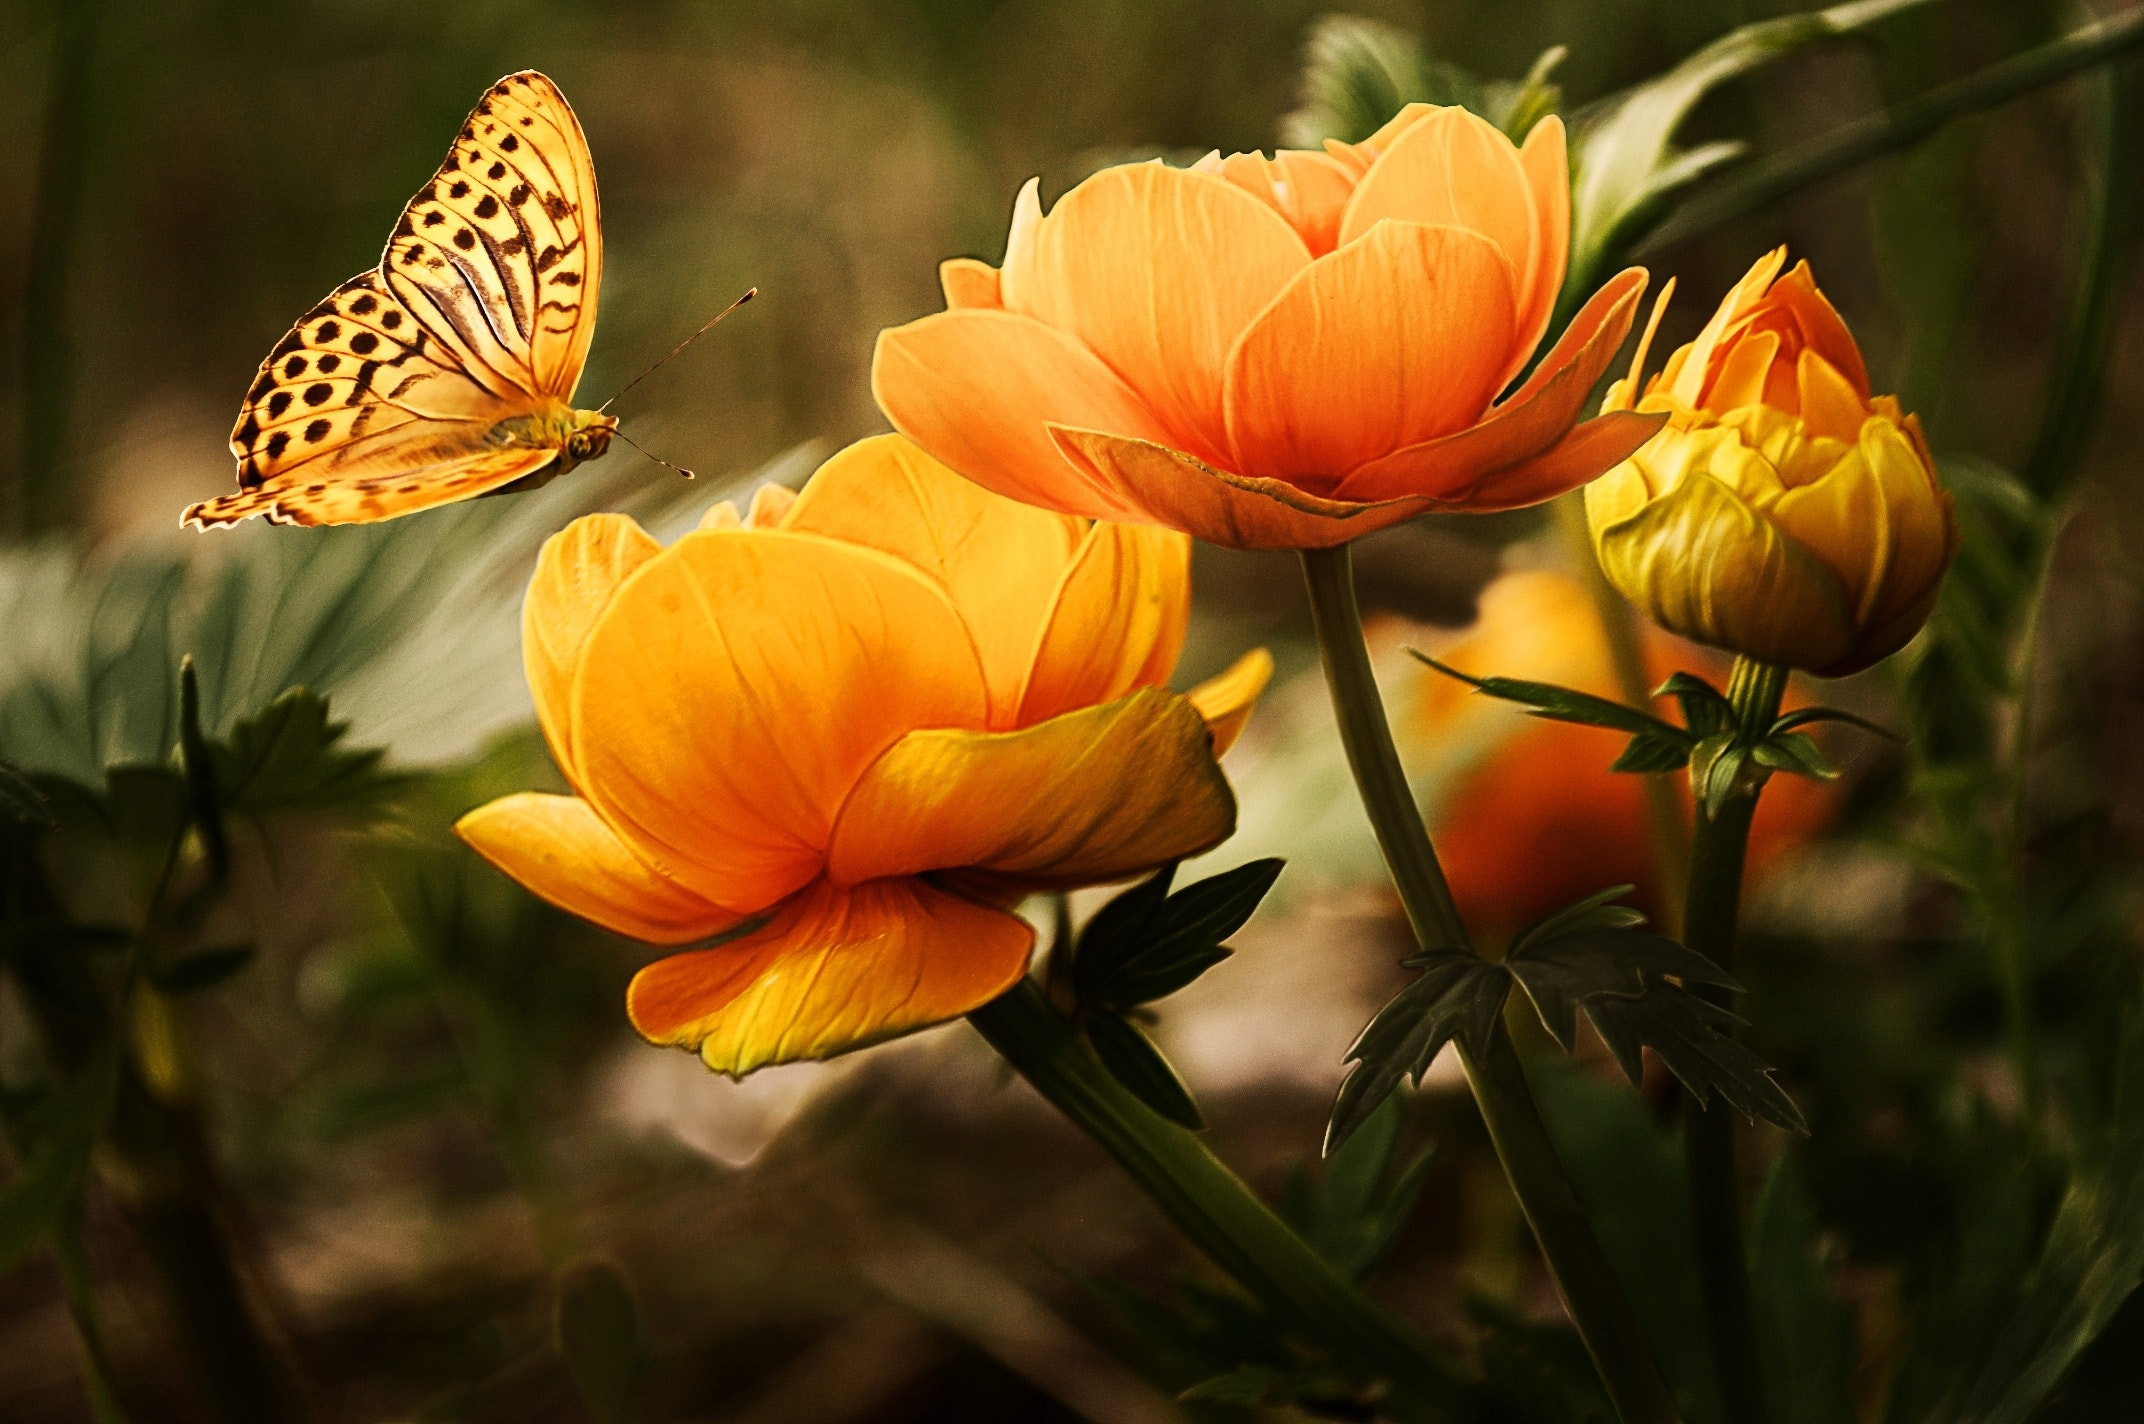 Orange Flower With Butterfly Free Stock Photo